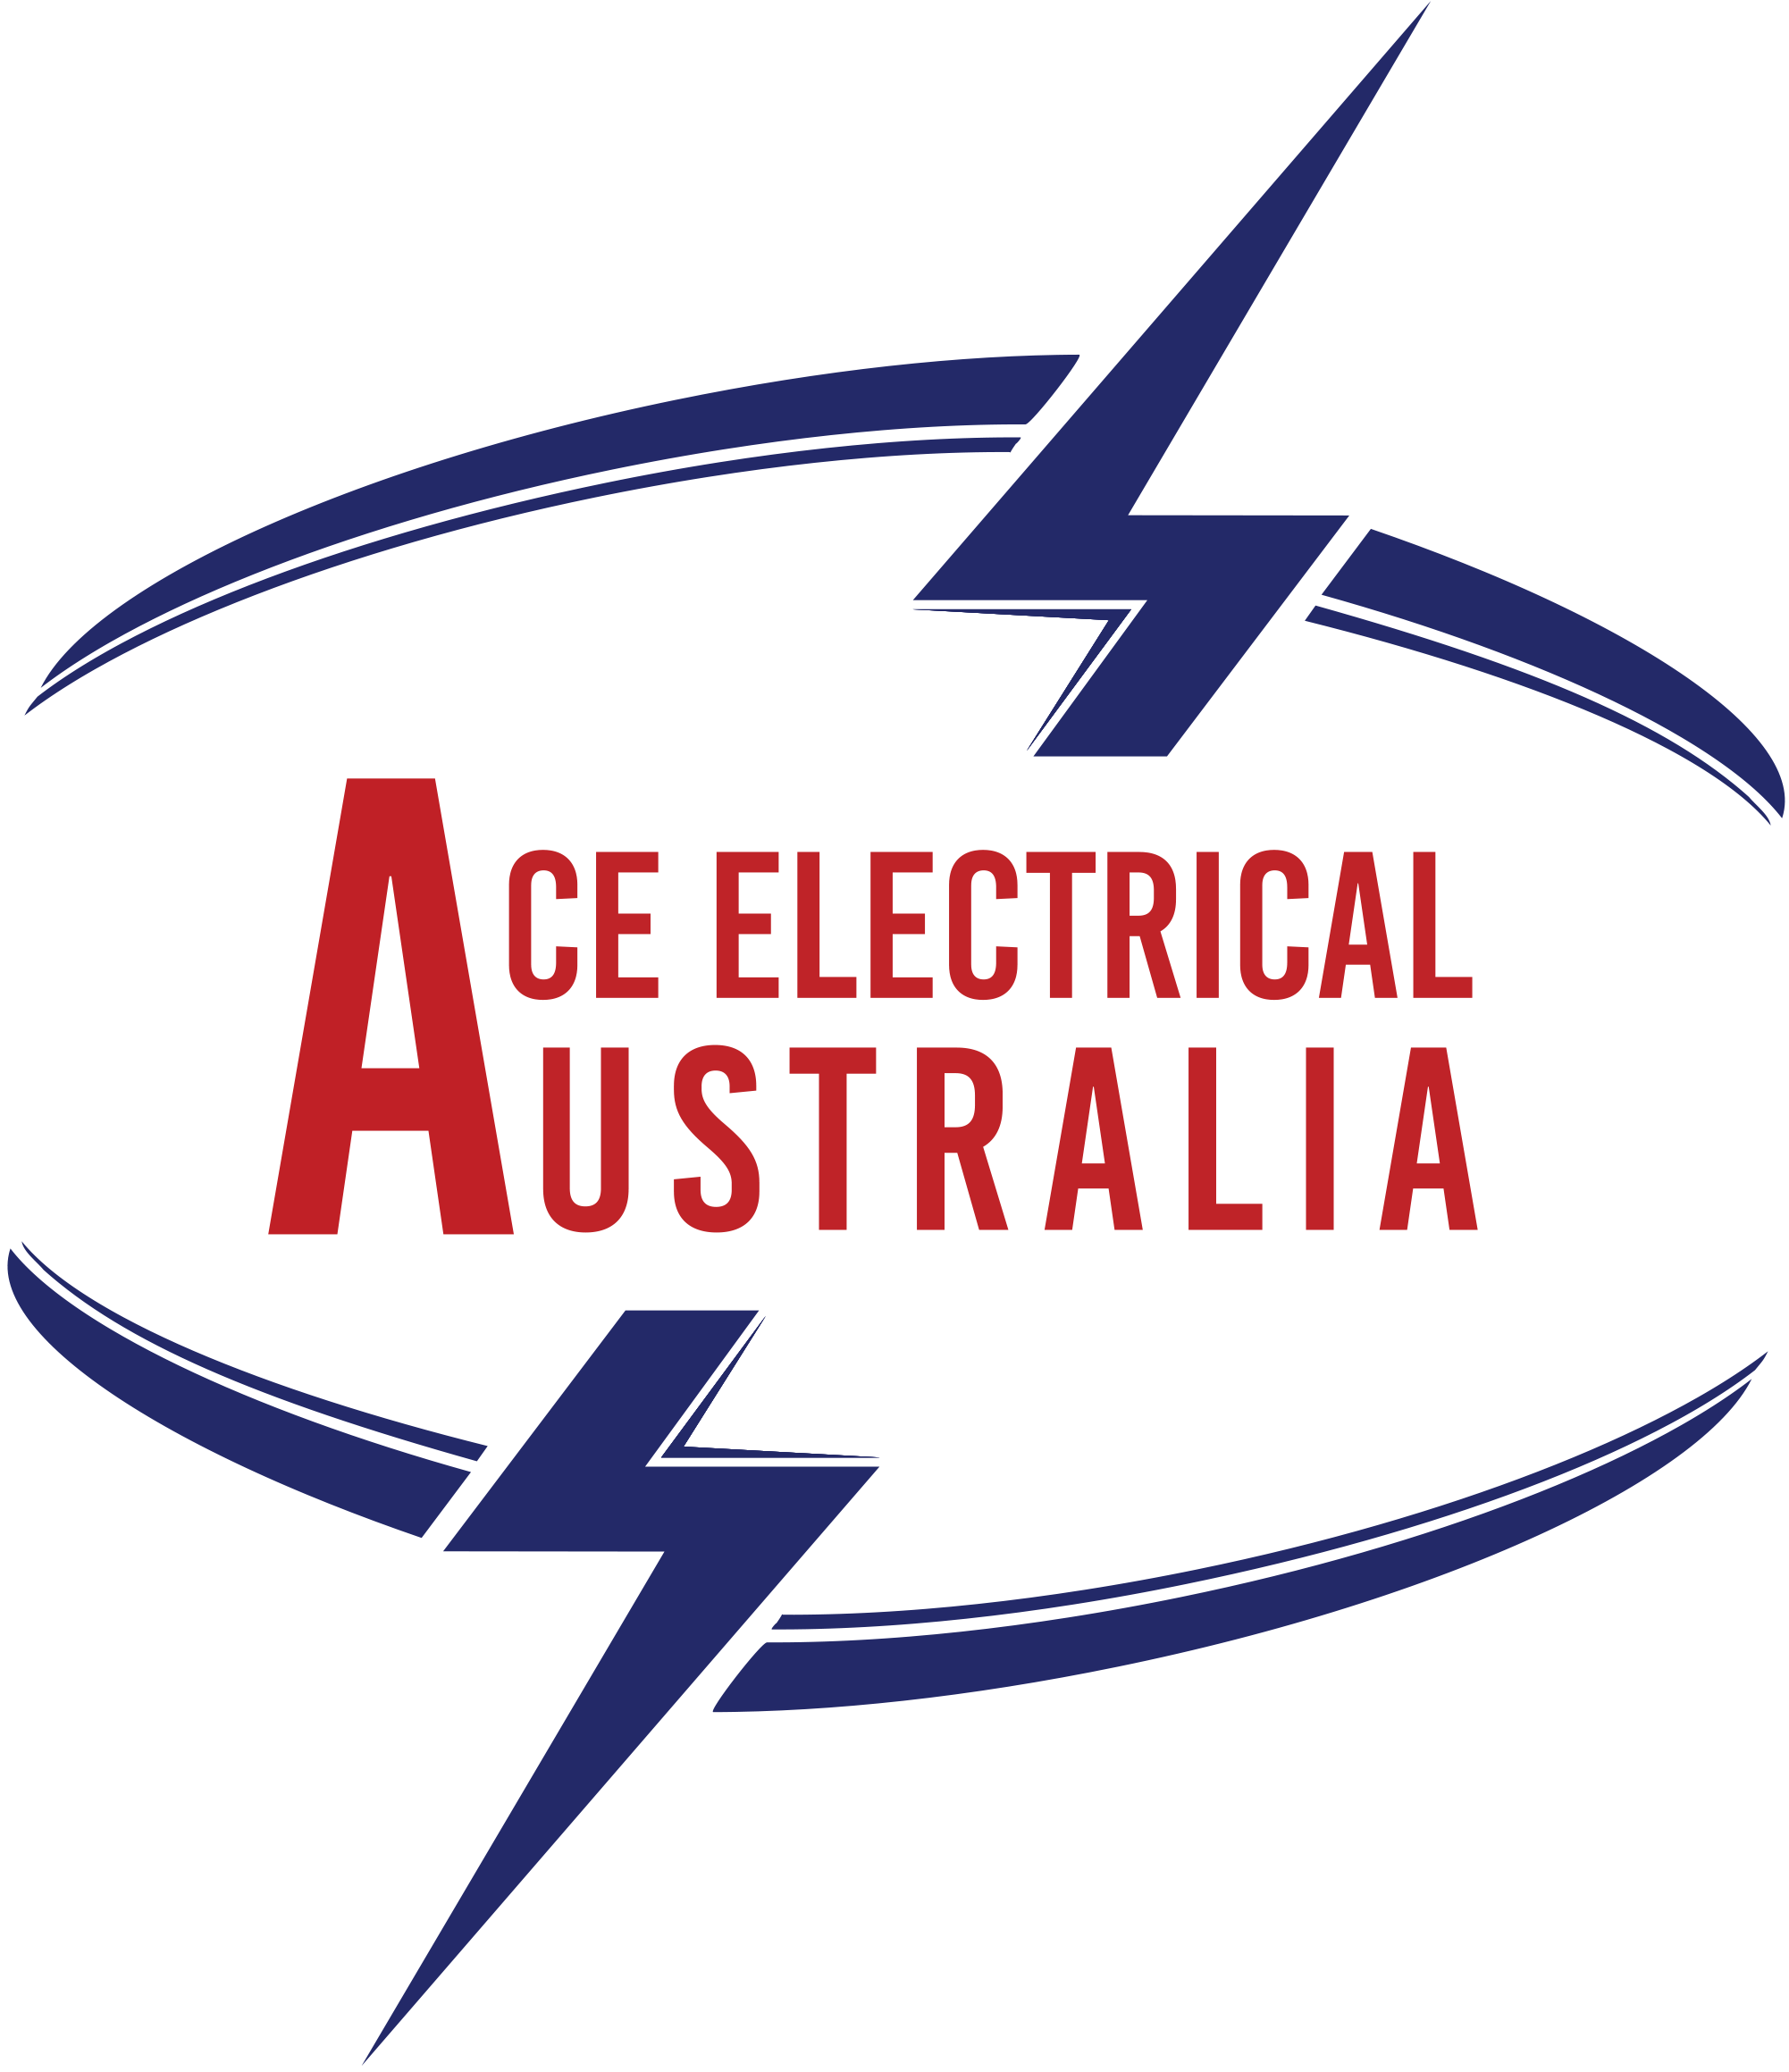 ACE Electrical Australia | A Trusted Electrical Contractor Based in ...